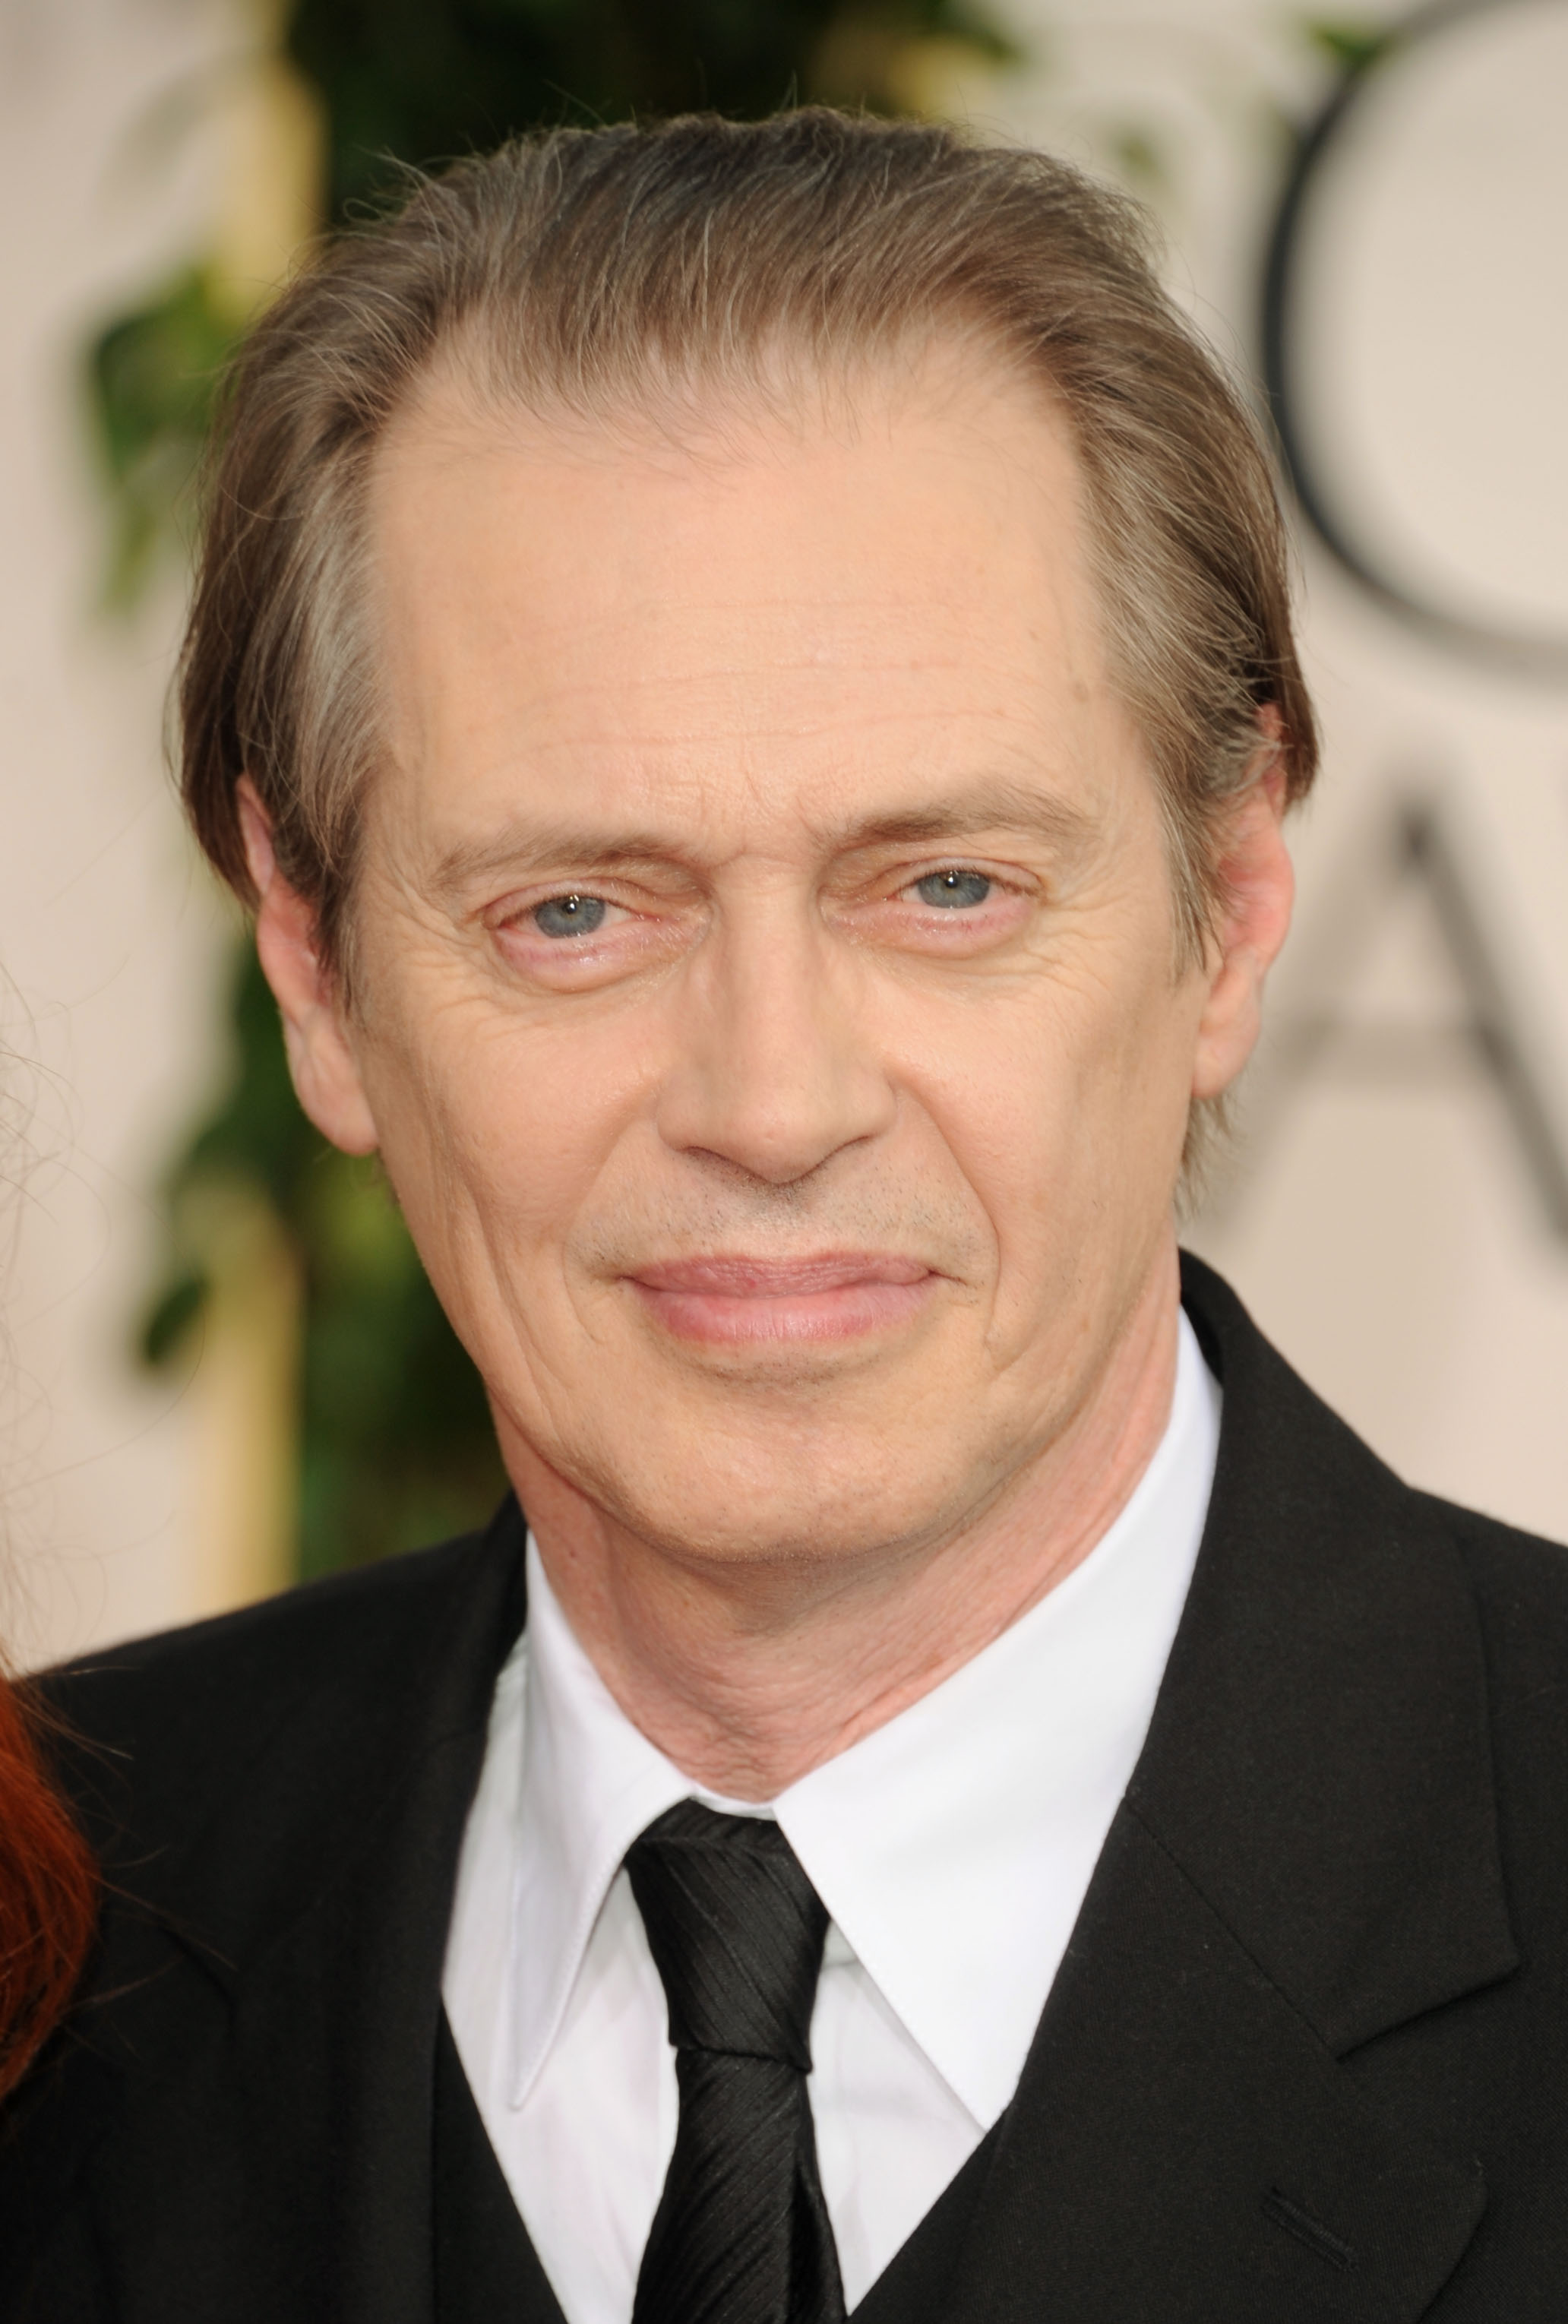 Pictures of Steve Buscemi